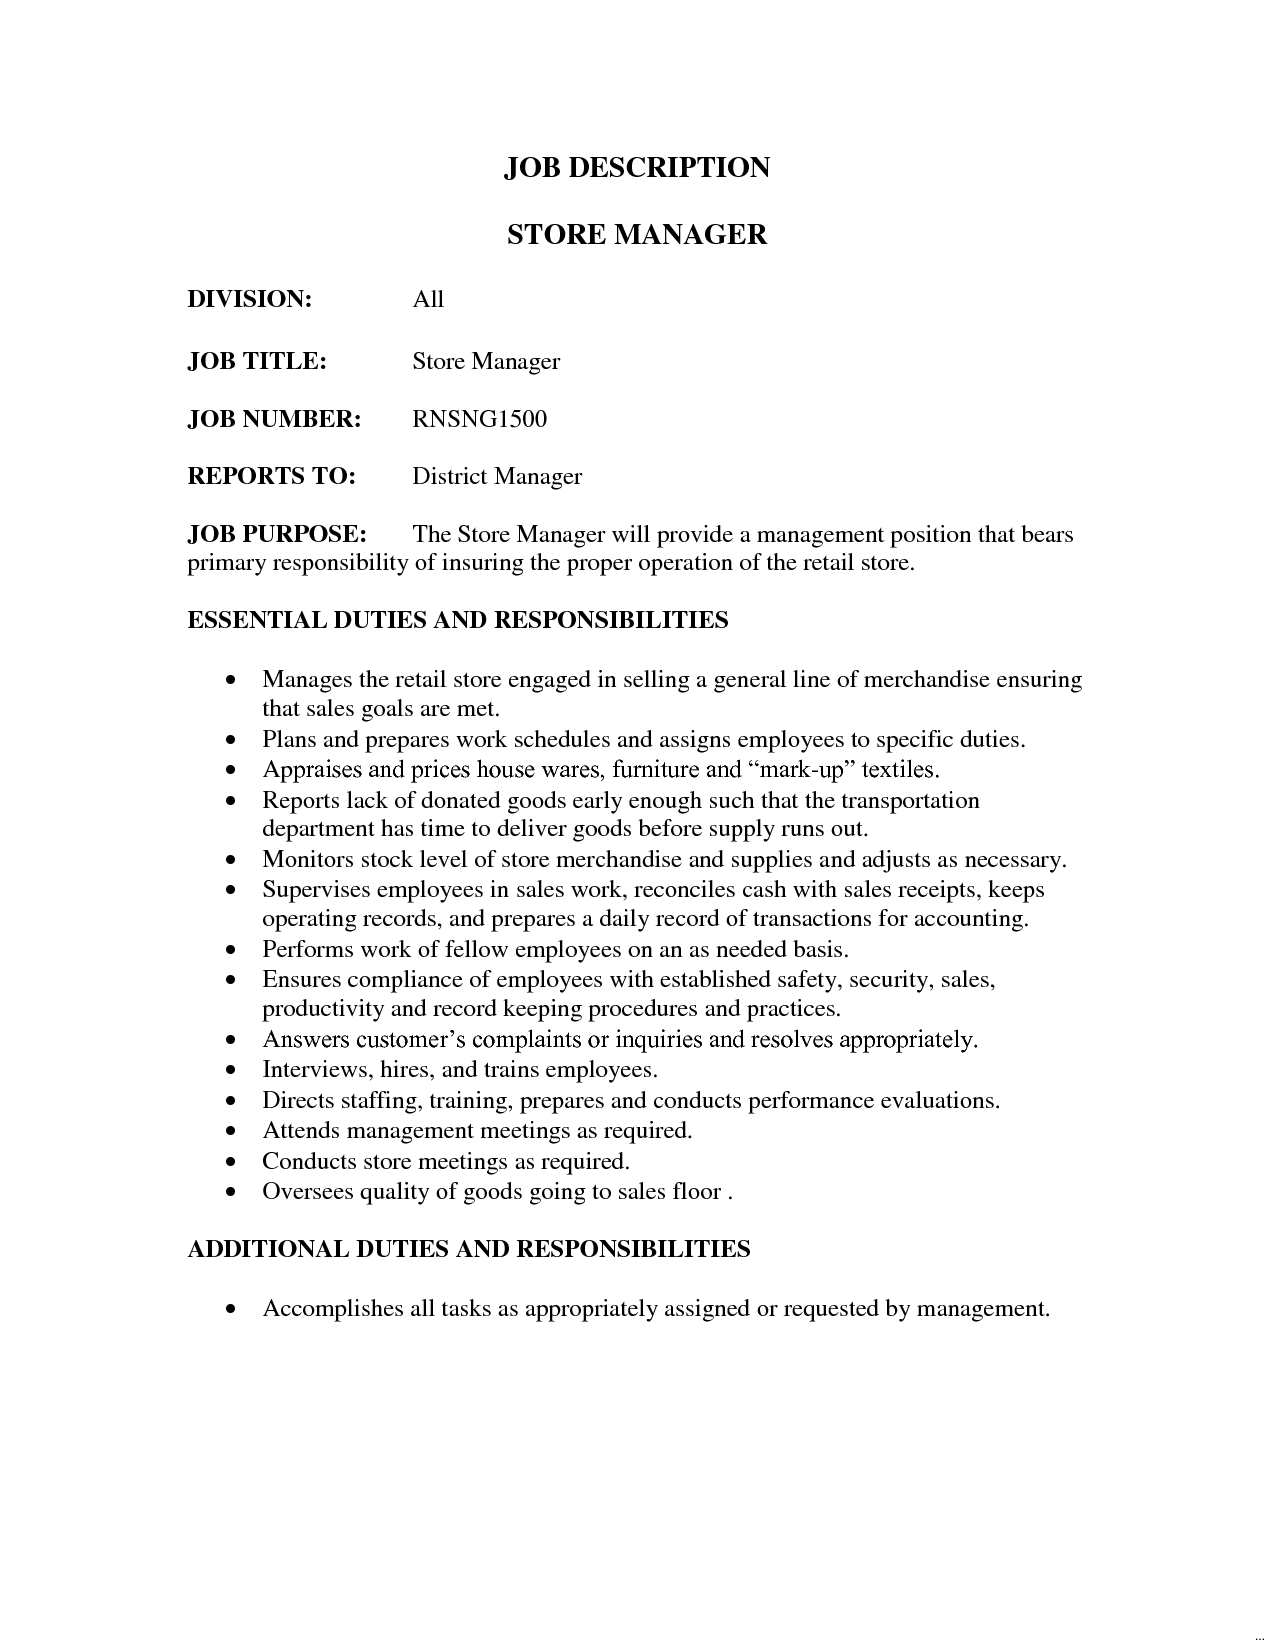 Retail Job Description Revolutionary Store Manager Sales Resume